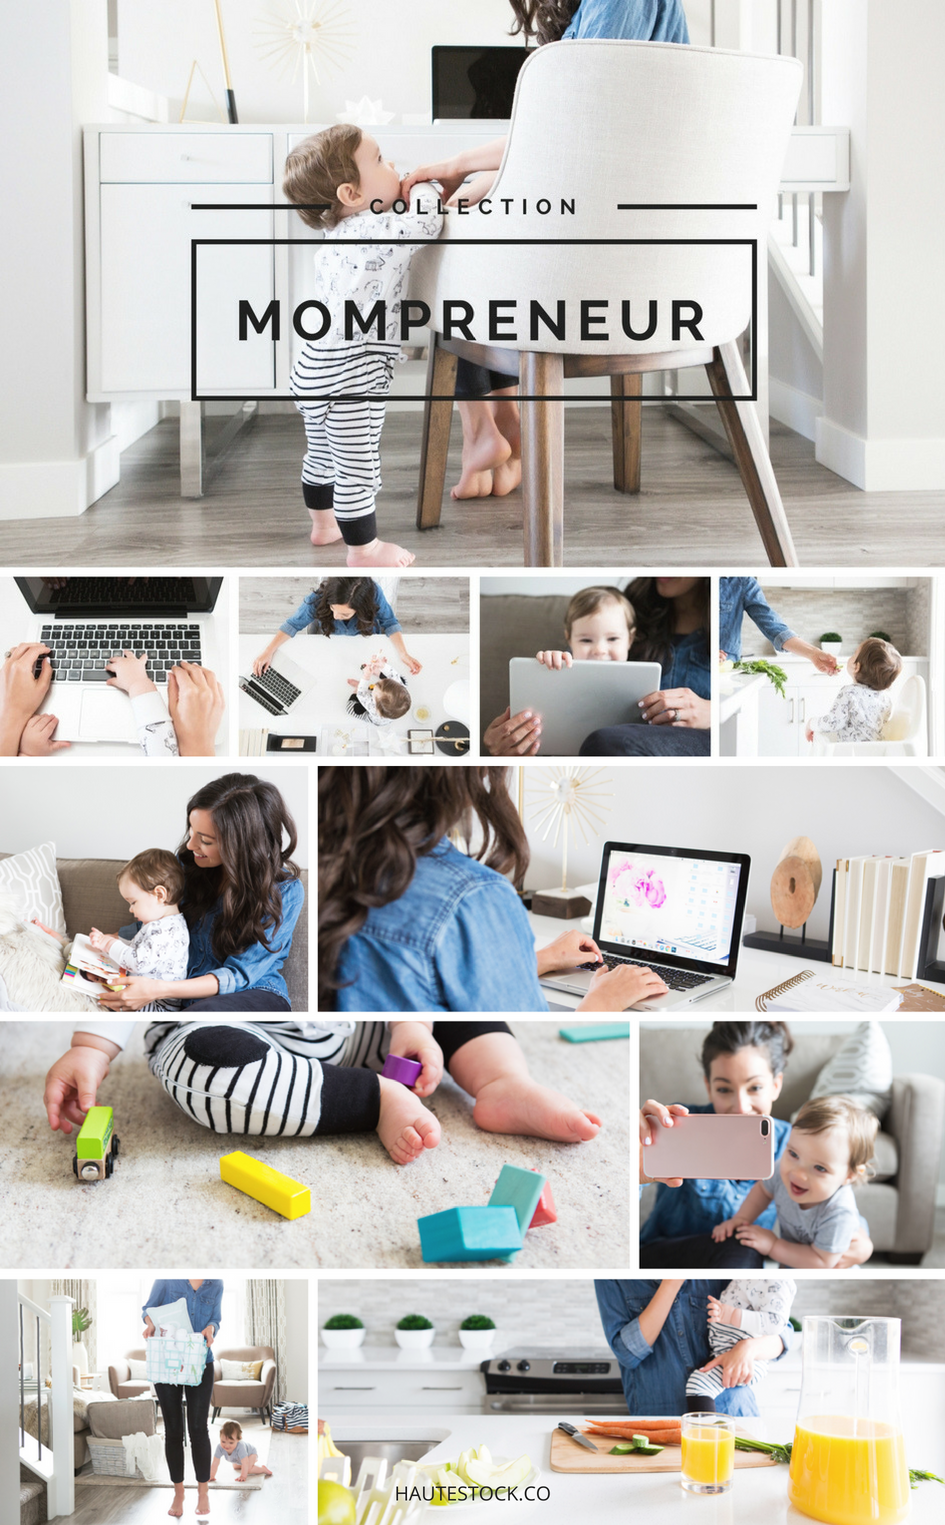 Modern Mompreneur Stock Photos from Haute Stock Images